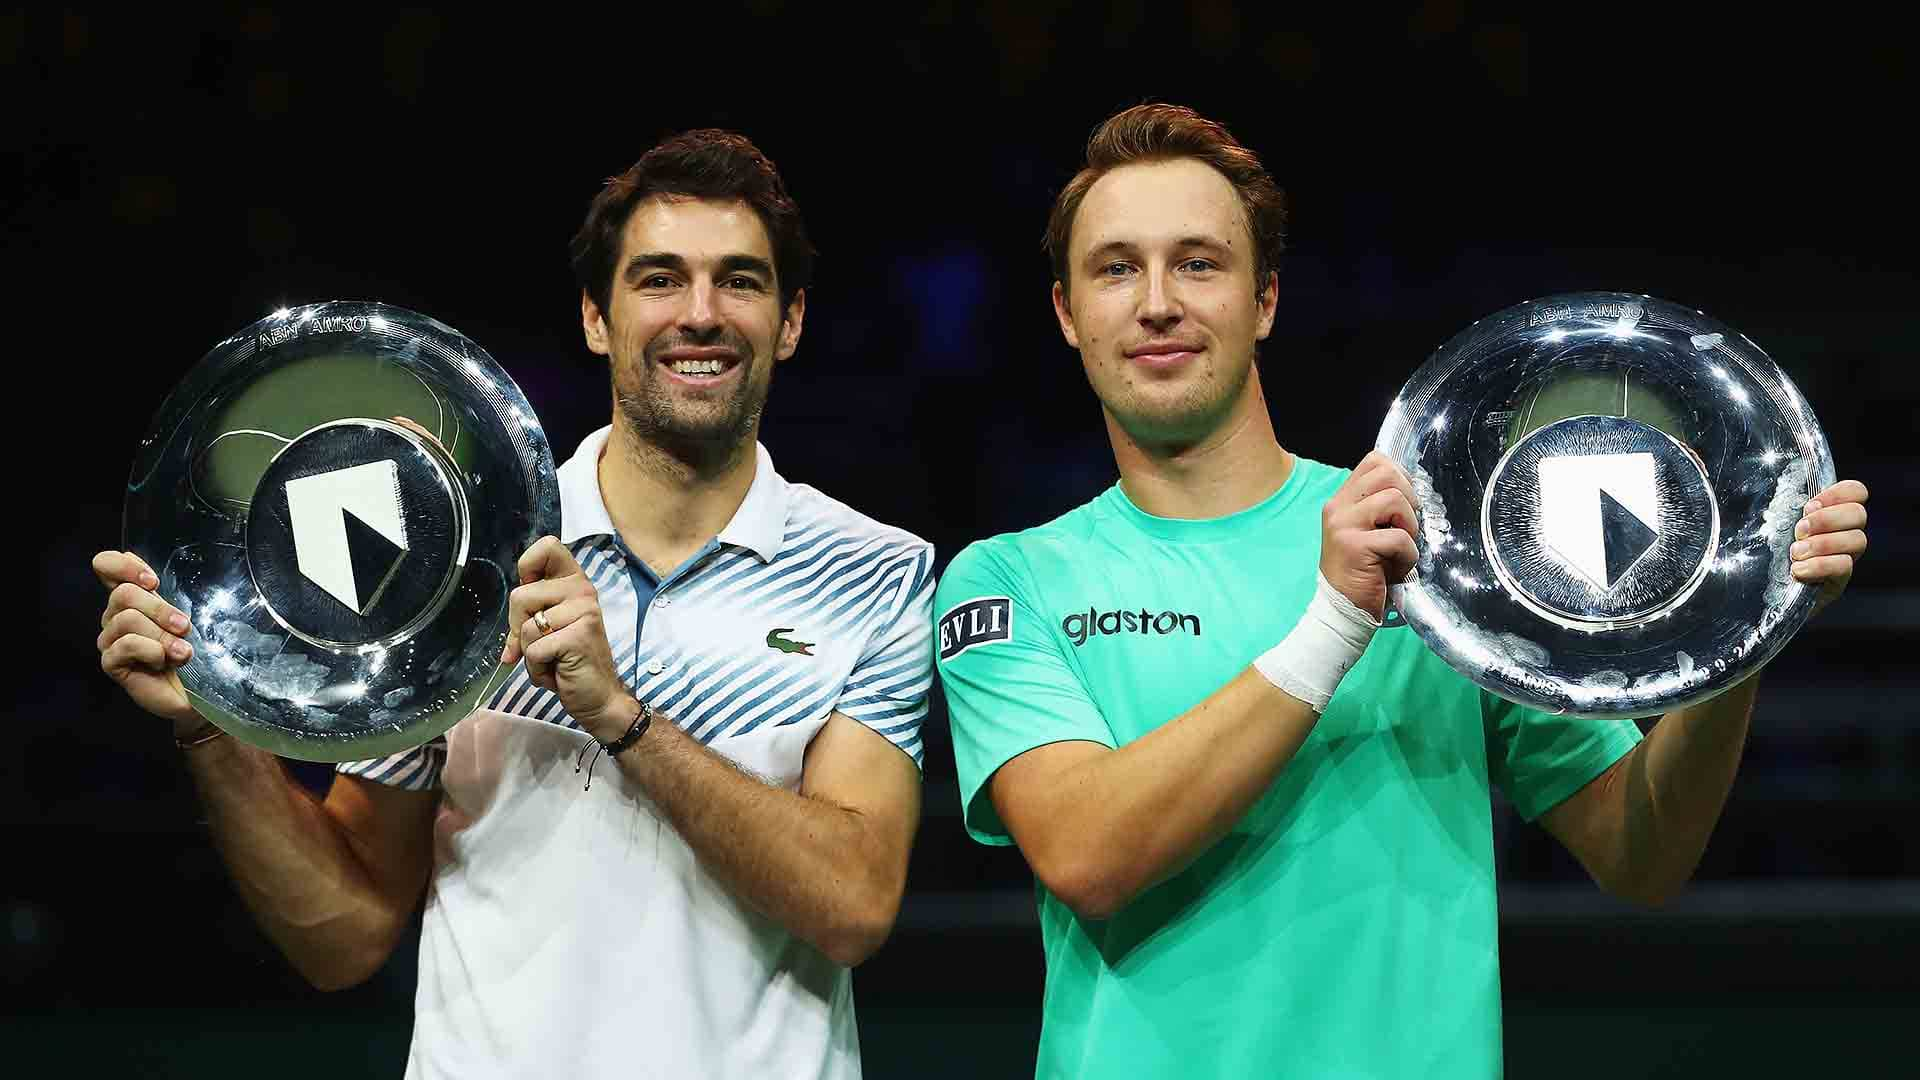 Jeremy Chardy and Henri Kontinen earn 500 ATP Doubles Ranking points for winning the ABN AMRO World Tennis Tournament on Sunday.